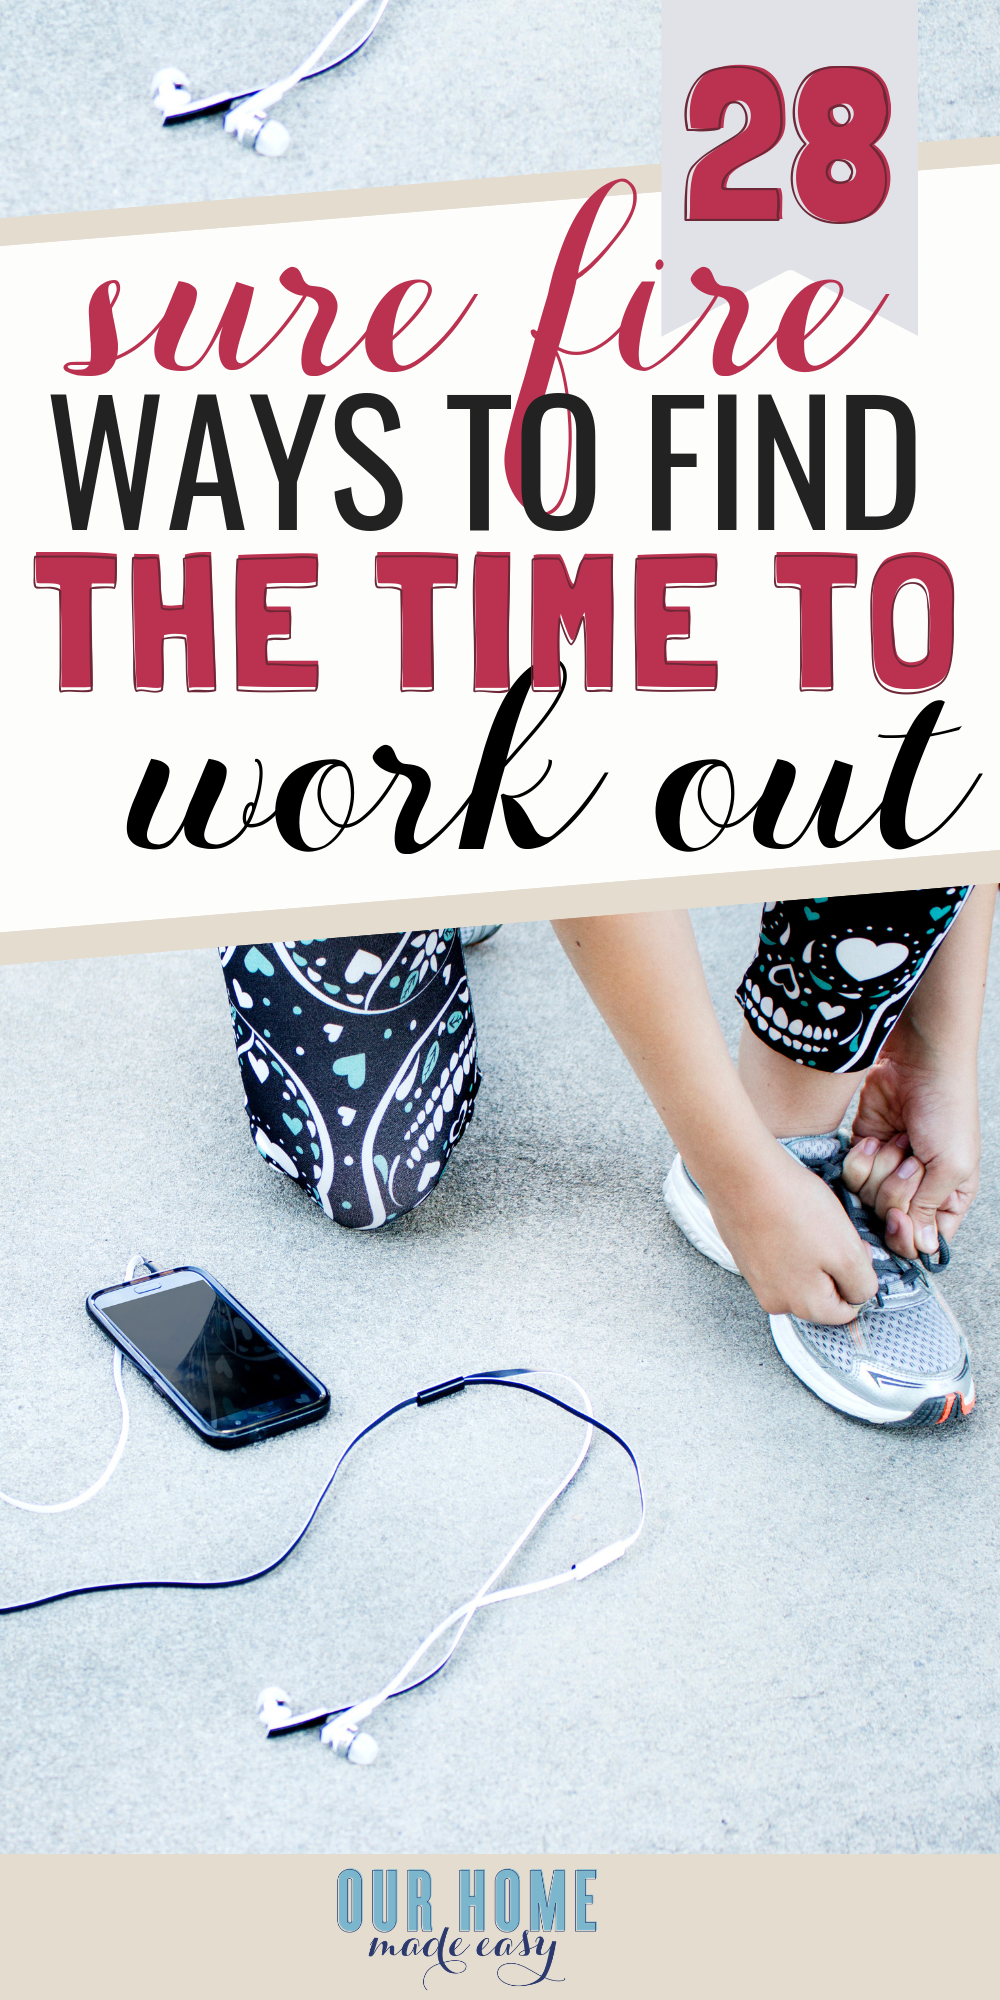 Making time for working out easier with these 28 tips & tricks! Even if you're a working mom, you still deserve some time to de-stress and find a routine that you actually enjoy. Includes a free work out tracker! Click to see all the tips & tricks! #healthy #ourhomemadeeasy #exercise #workingout